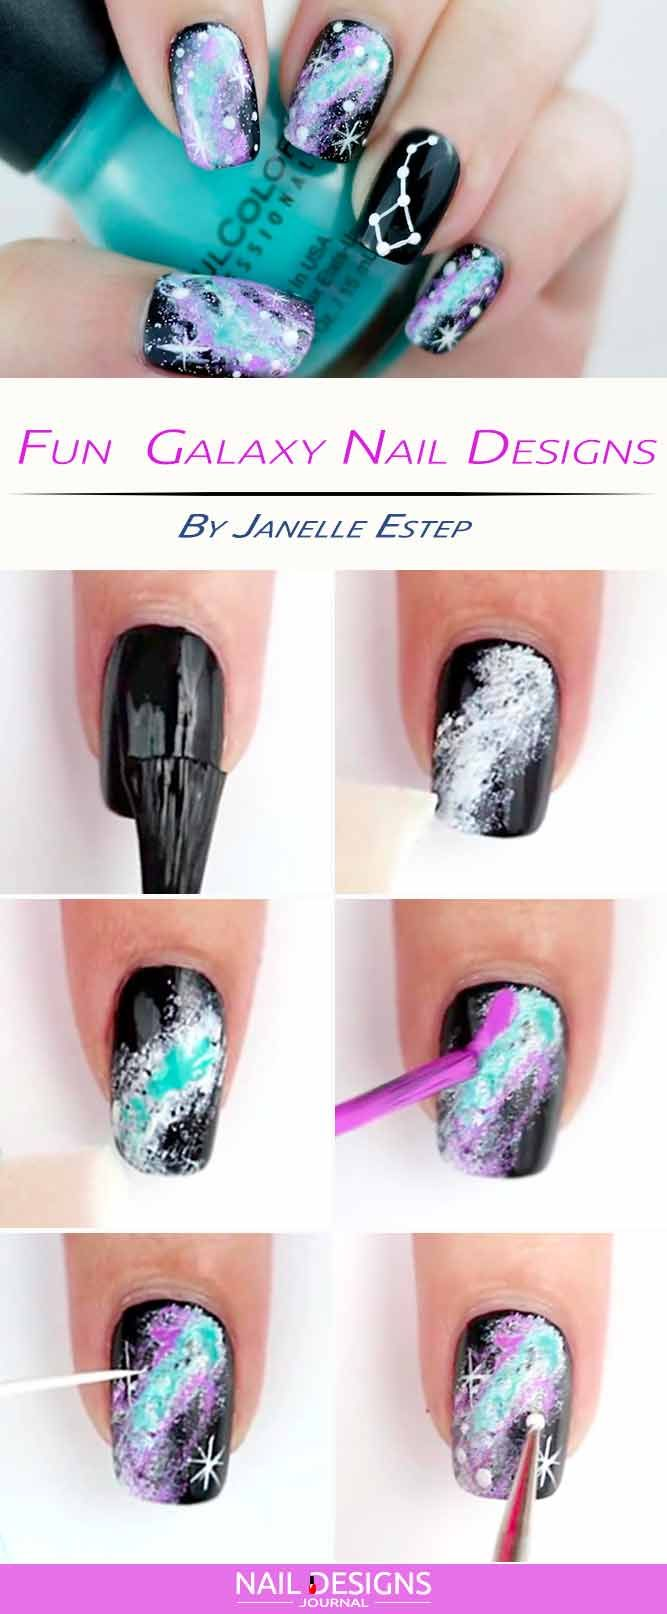 Fun Nail Designs That Are Easy To Do At Home Tutorial Nails Fun